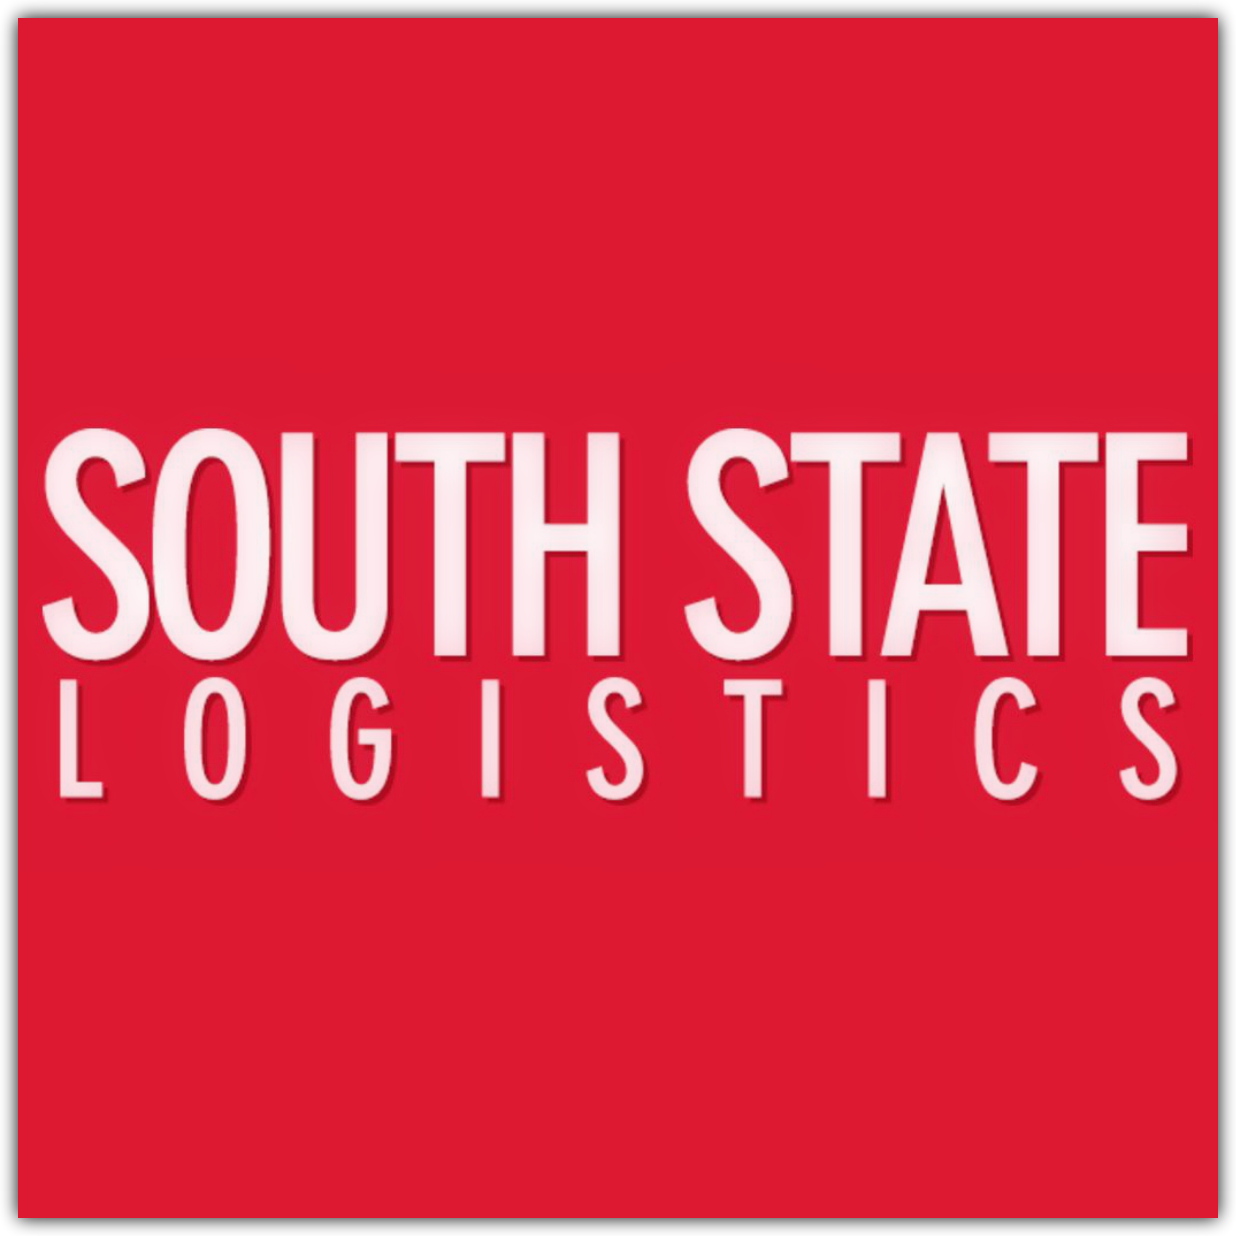 South State Logistics